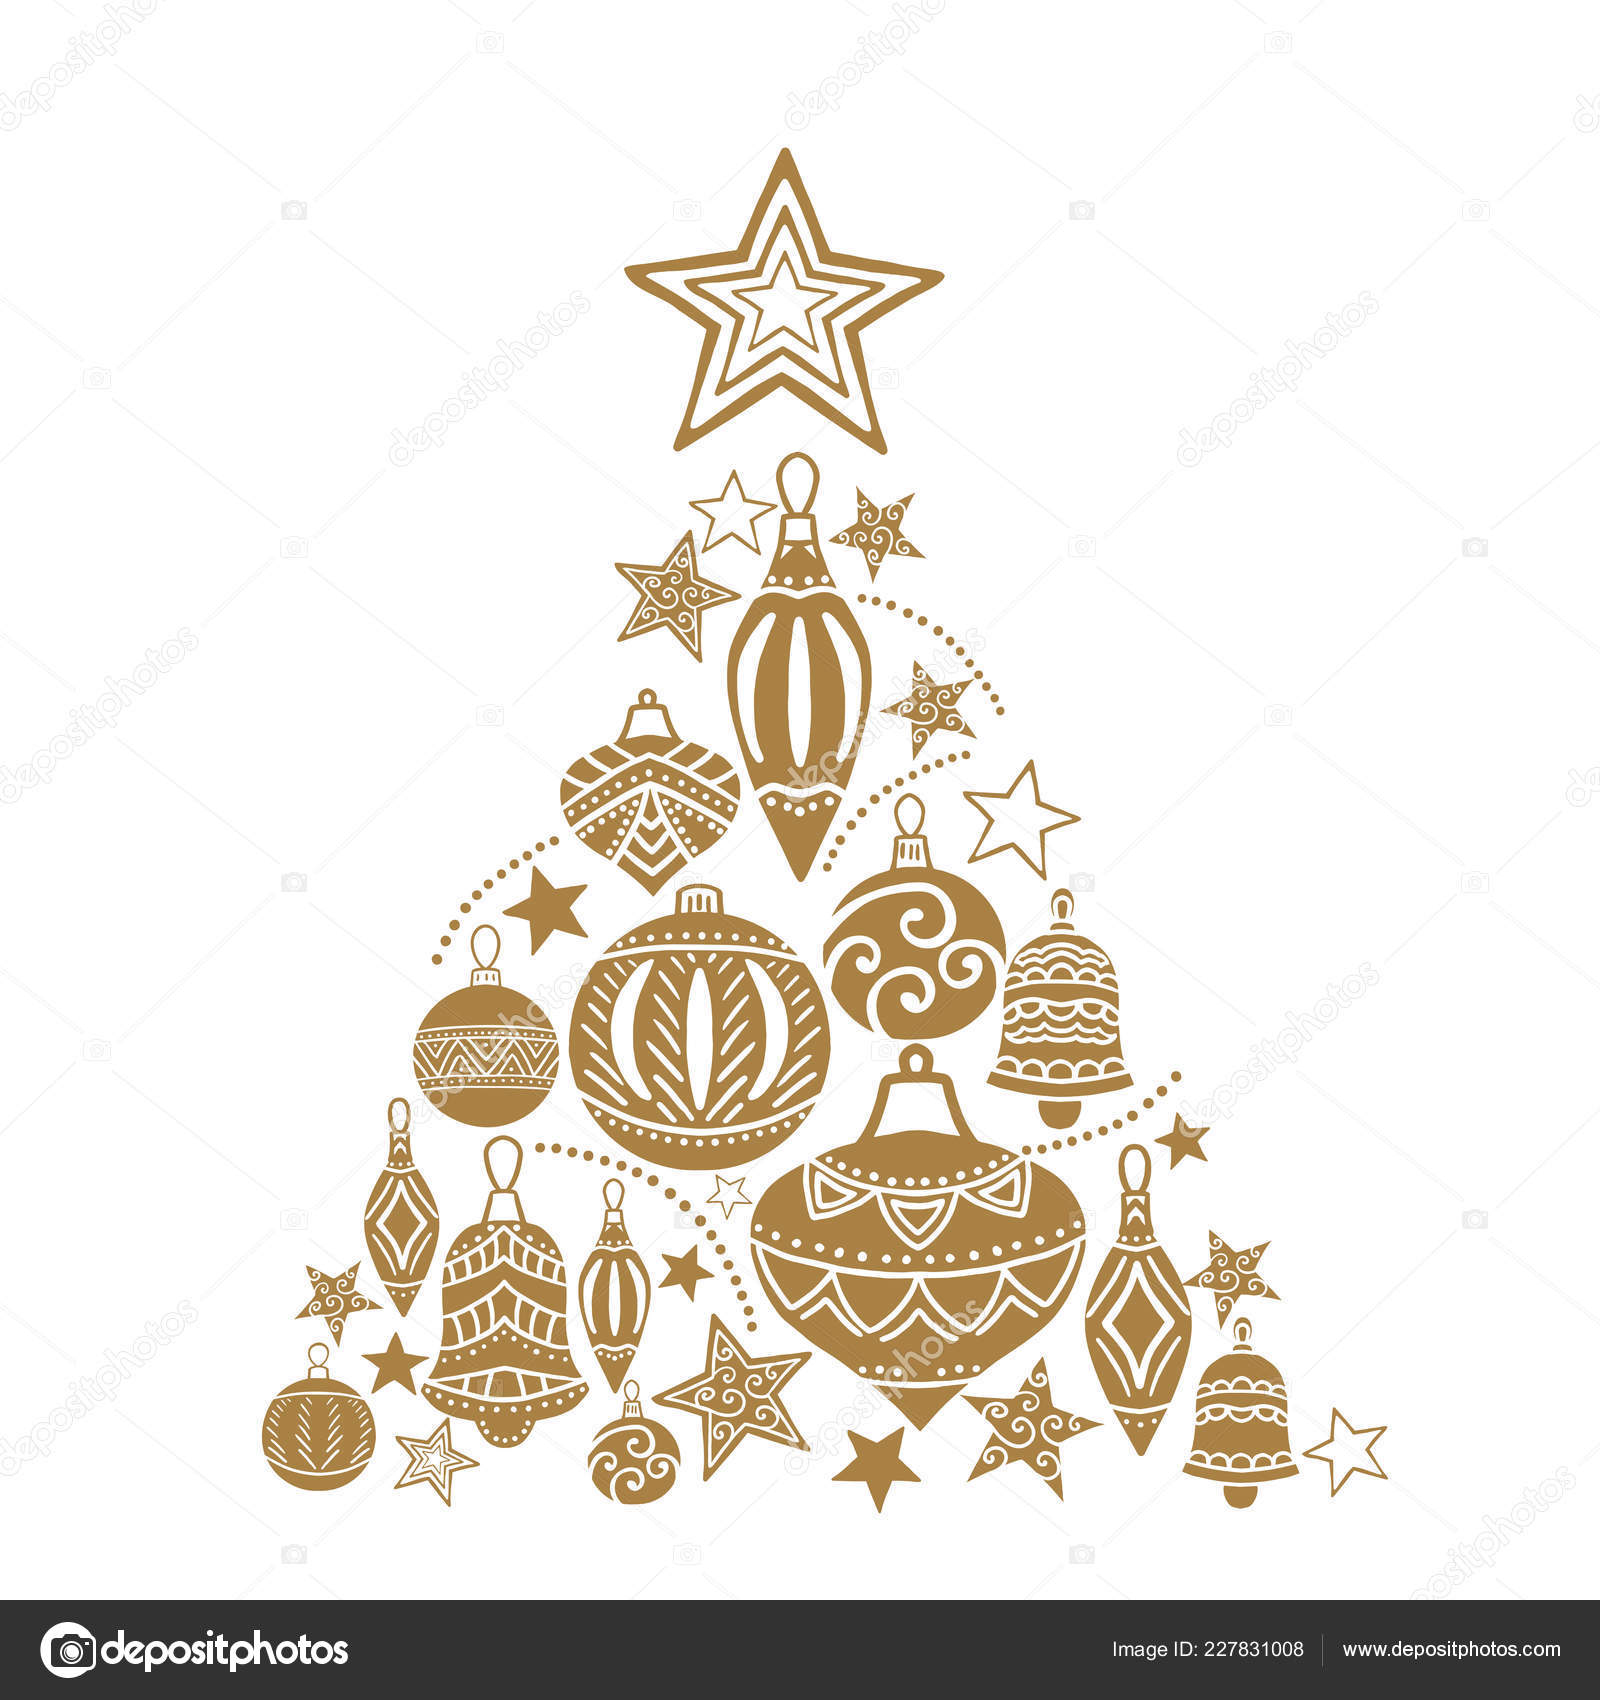 Drawing Christmas Tree Sketch.Christmas Tree Sketch Drawing For Your Design Greeting